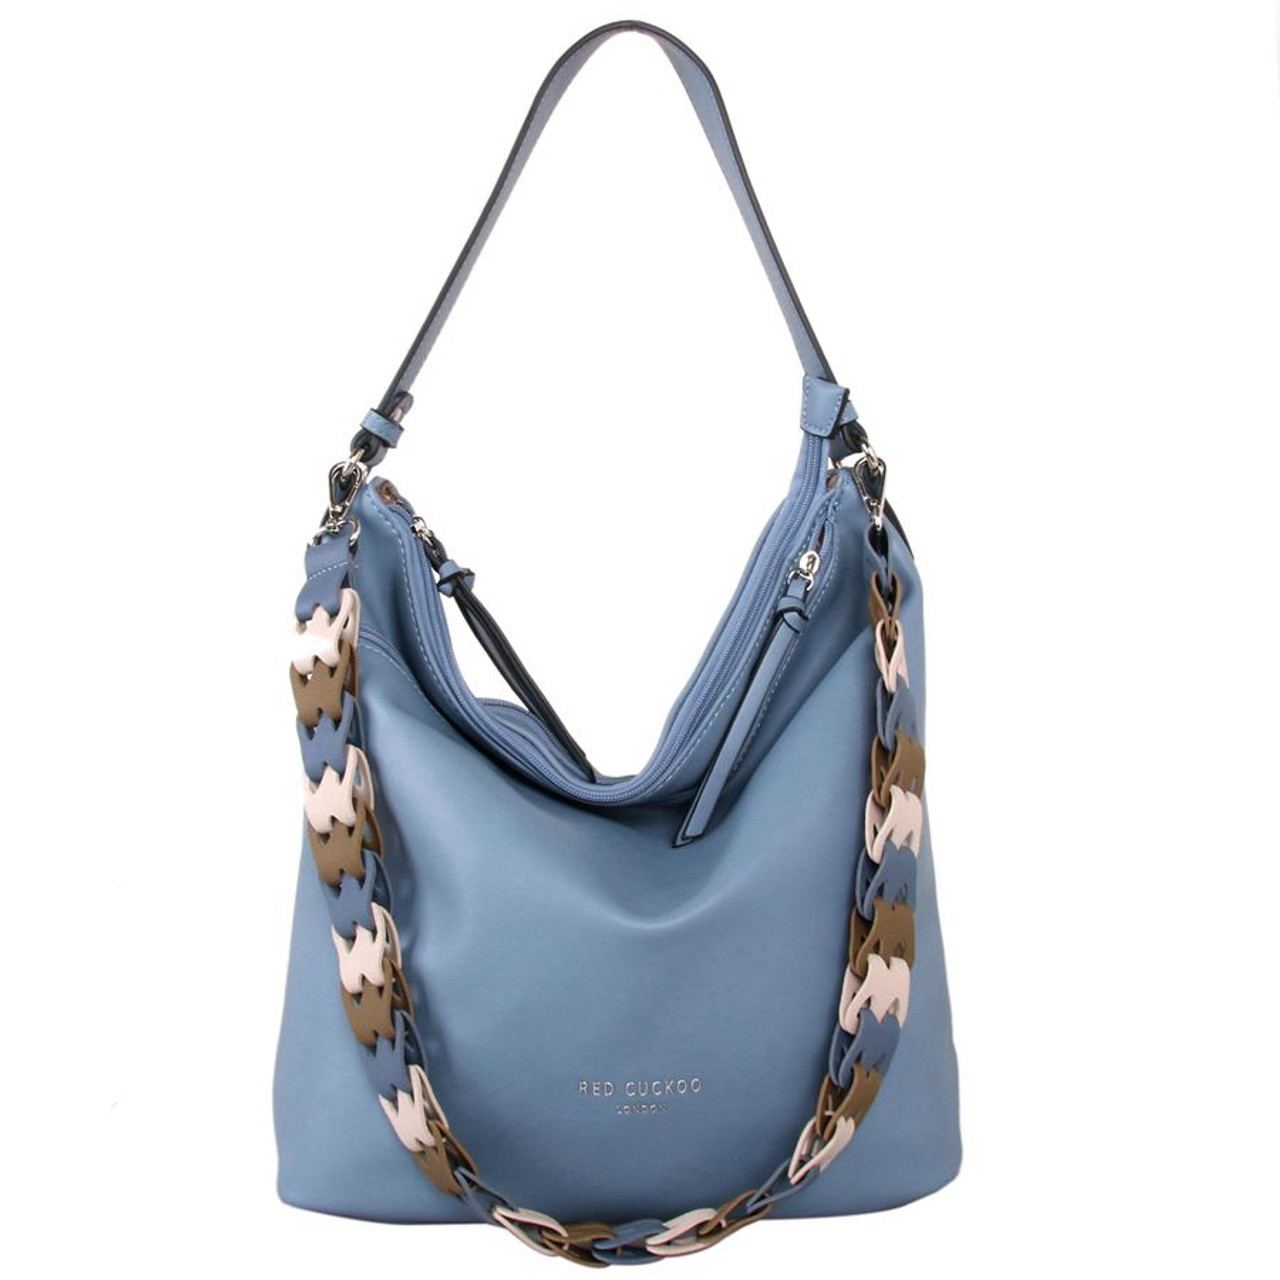 4c63ddd92490 Red Cuckoo Dusky Blue Shoulder Bag with Contrast Strap